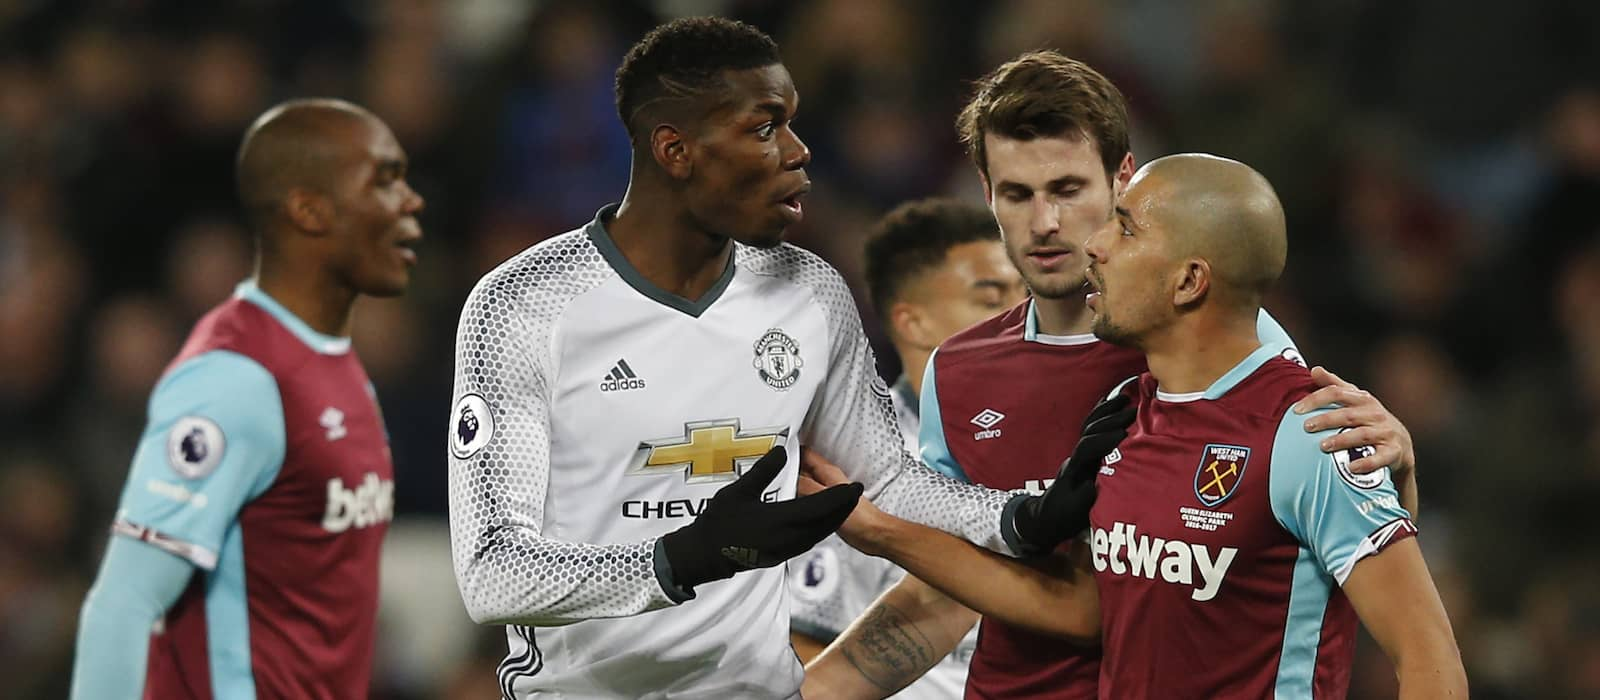 West Ham United 0-2 Manchester United: Player ratings